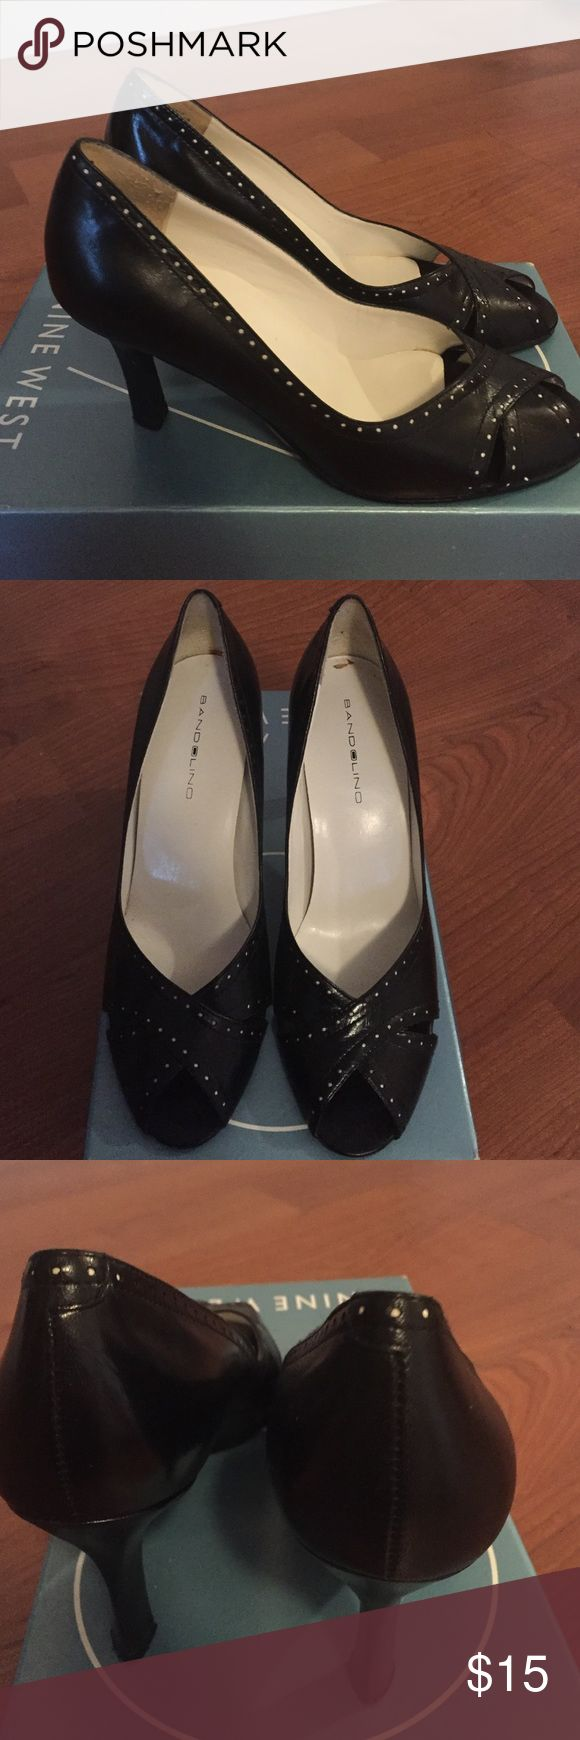 Peep toe pump Gently used peep toes pumps. Black with white dot detail. Super comfortable Bandolino Shoes Heels